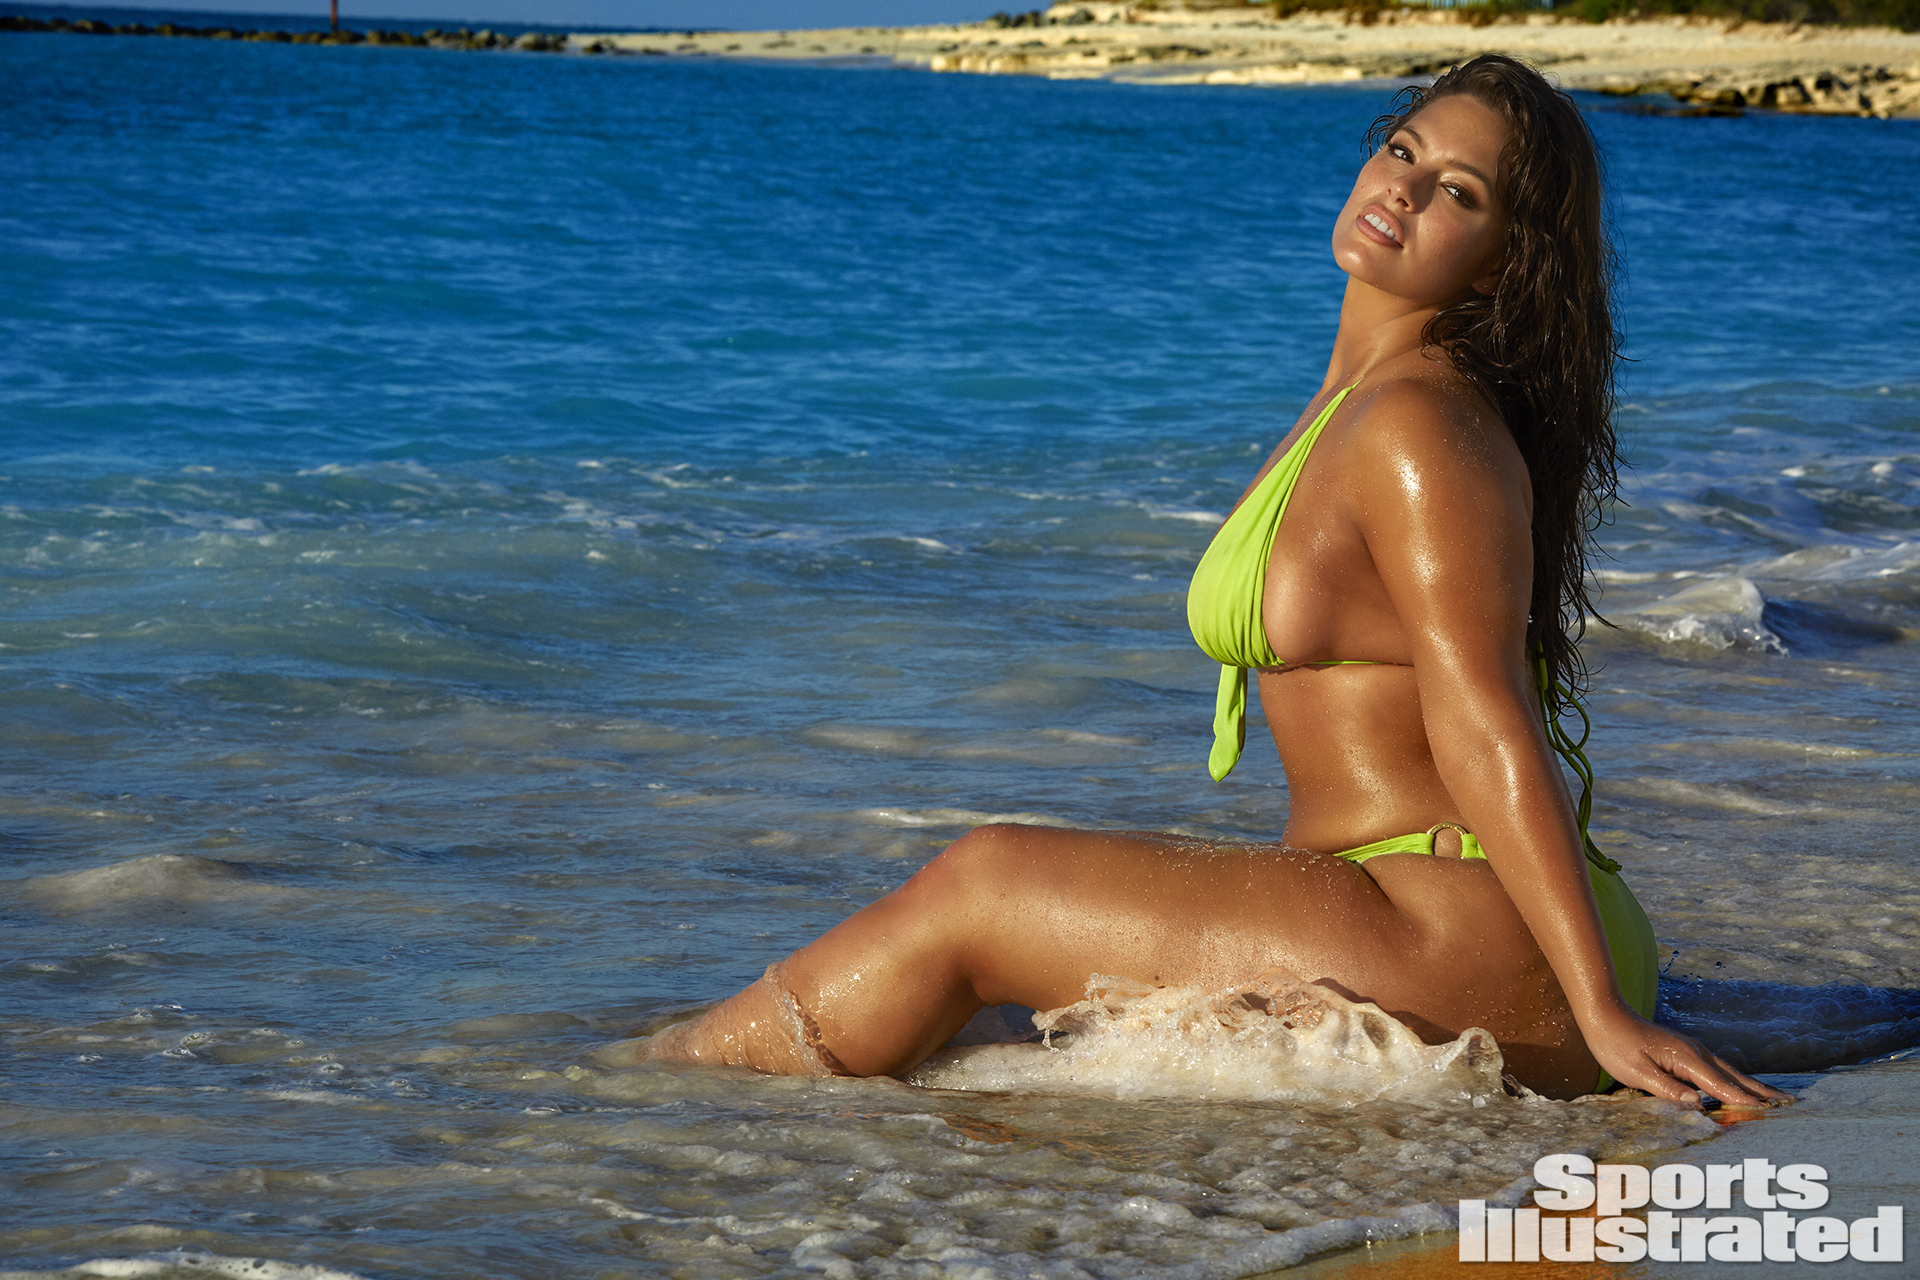 Ashley Graham was photographed by James Macari in Turks & Caicos. Swimsuit by Trunkettes.